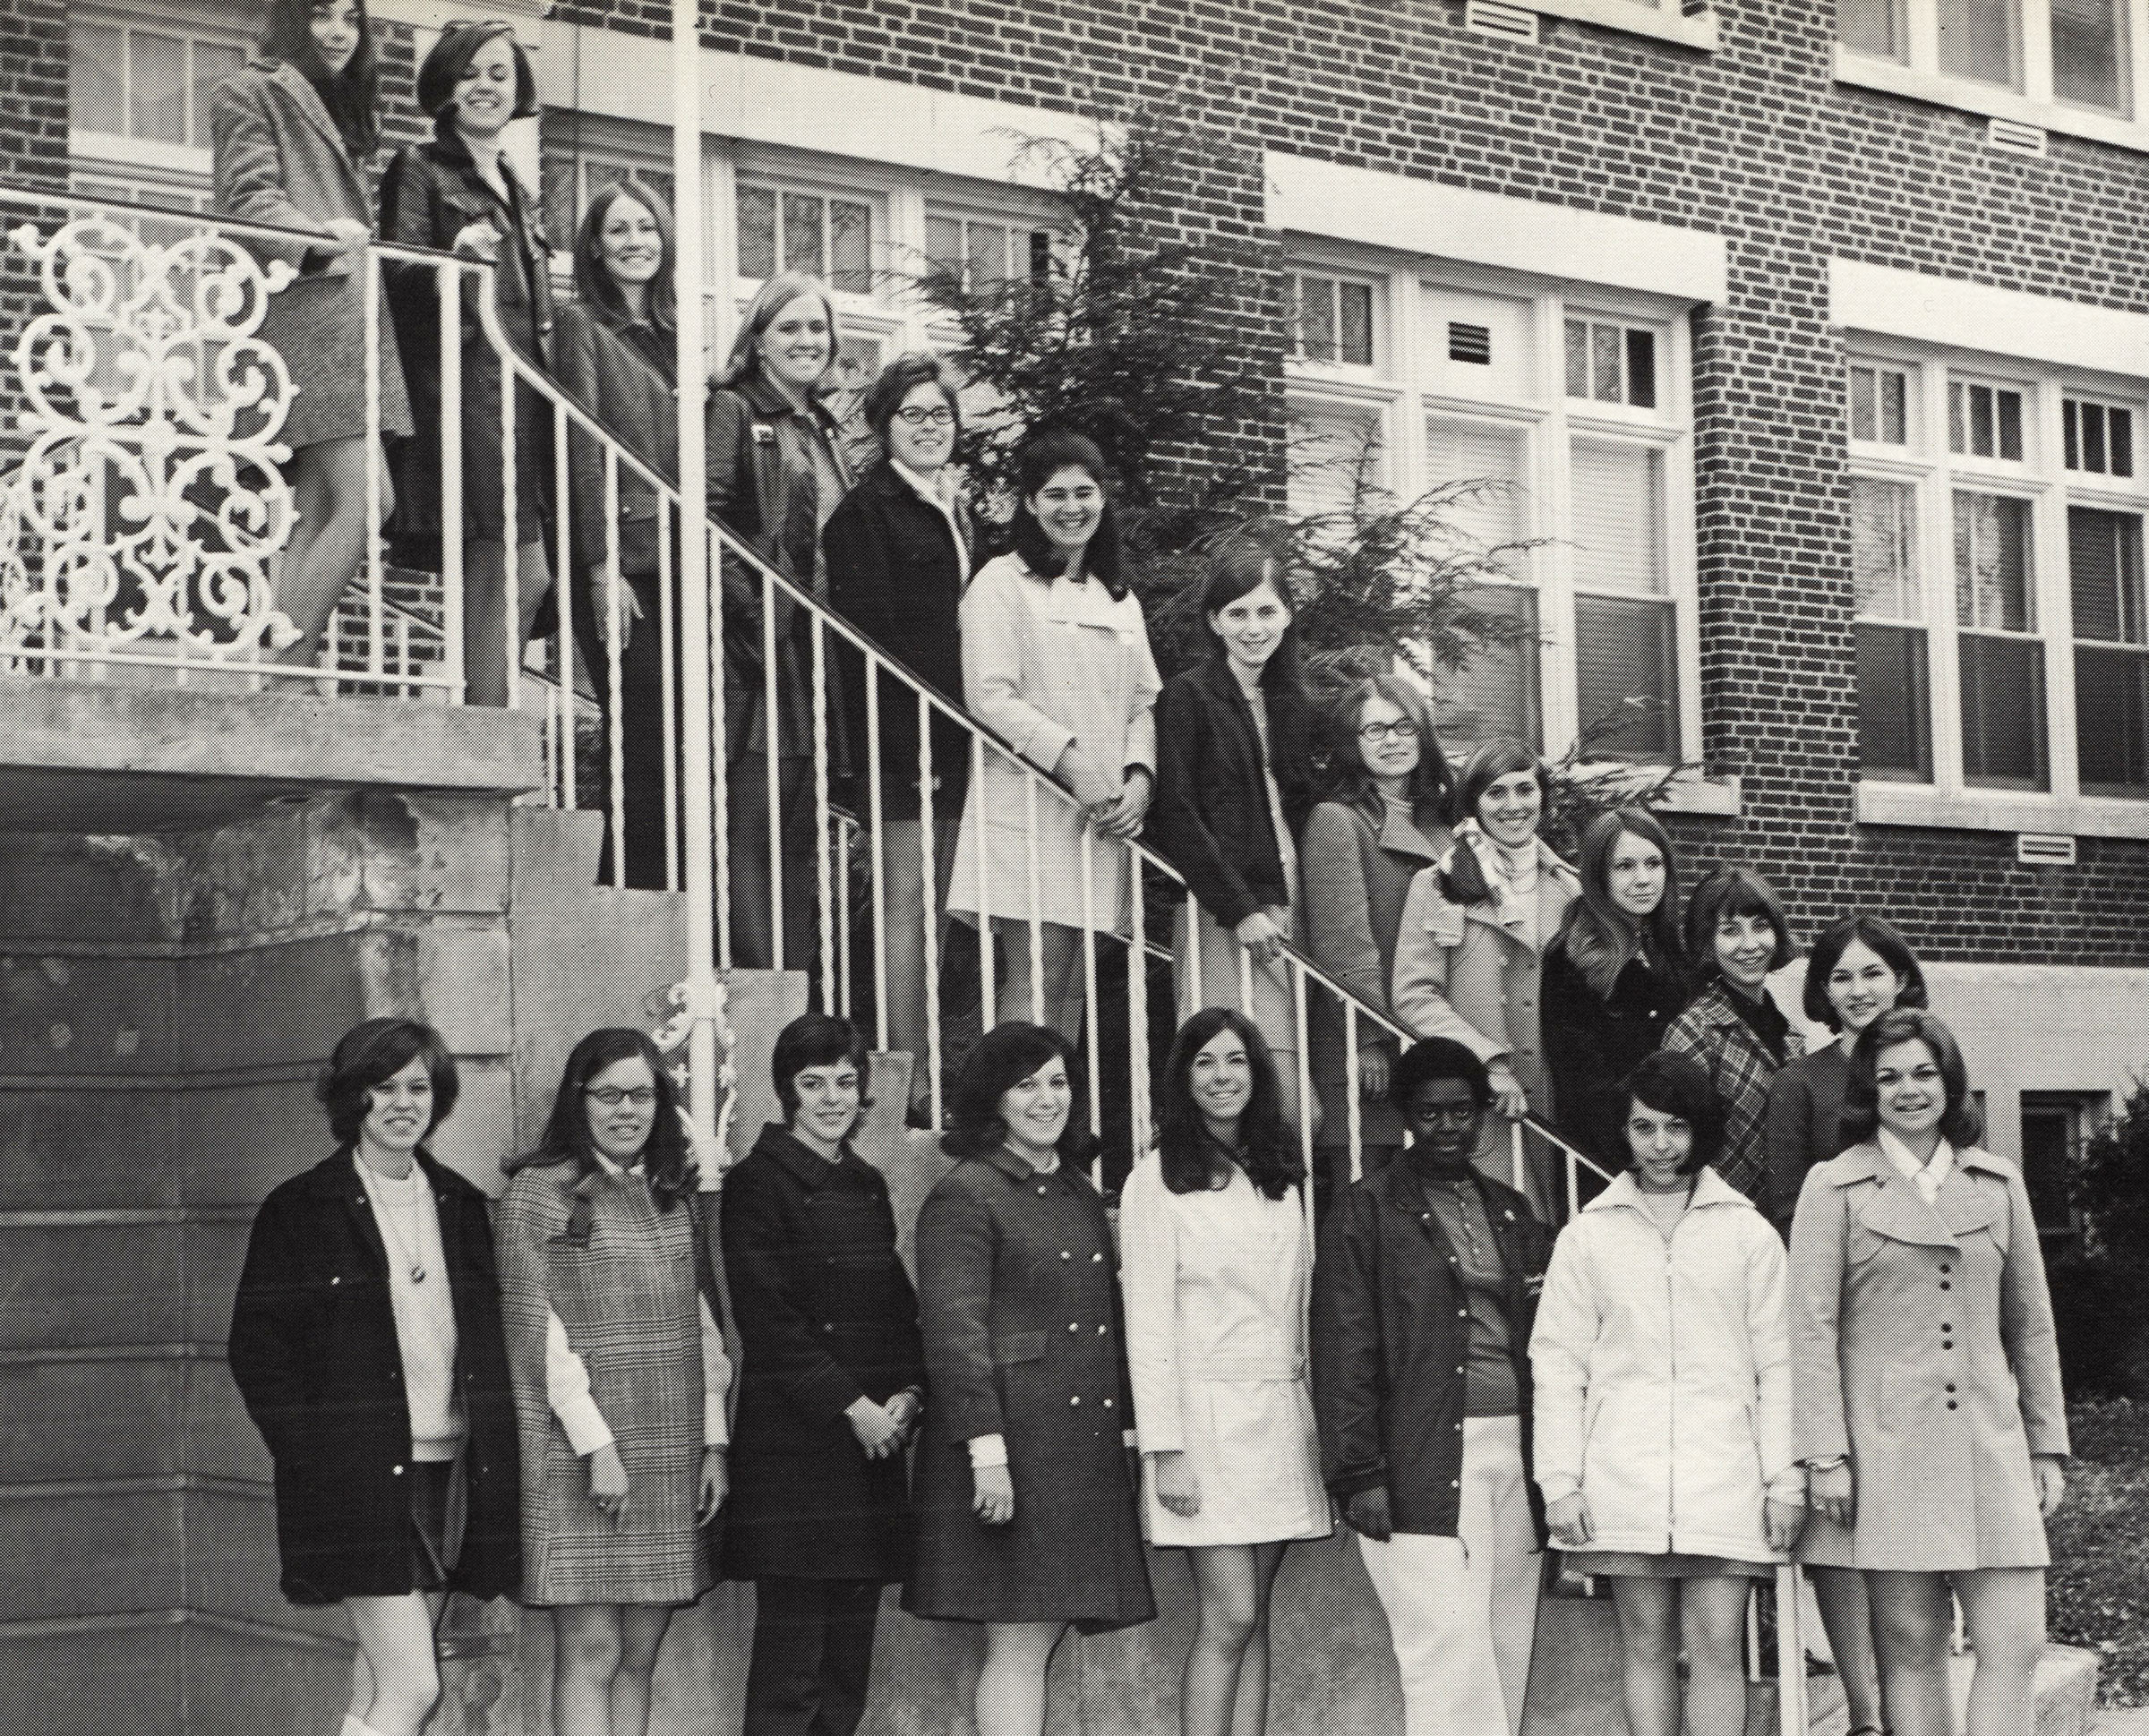 Members of the Women's Council on the Brown Hall steps, 1971.